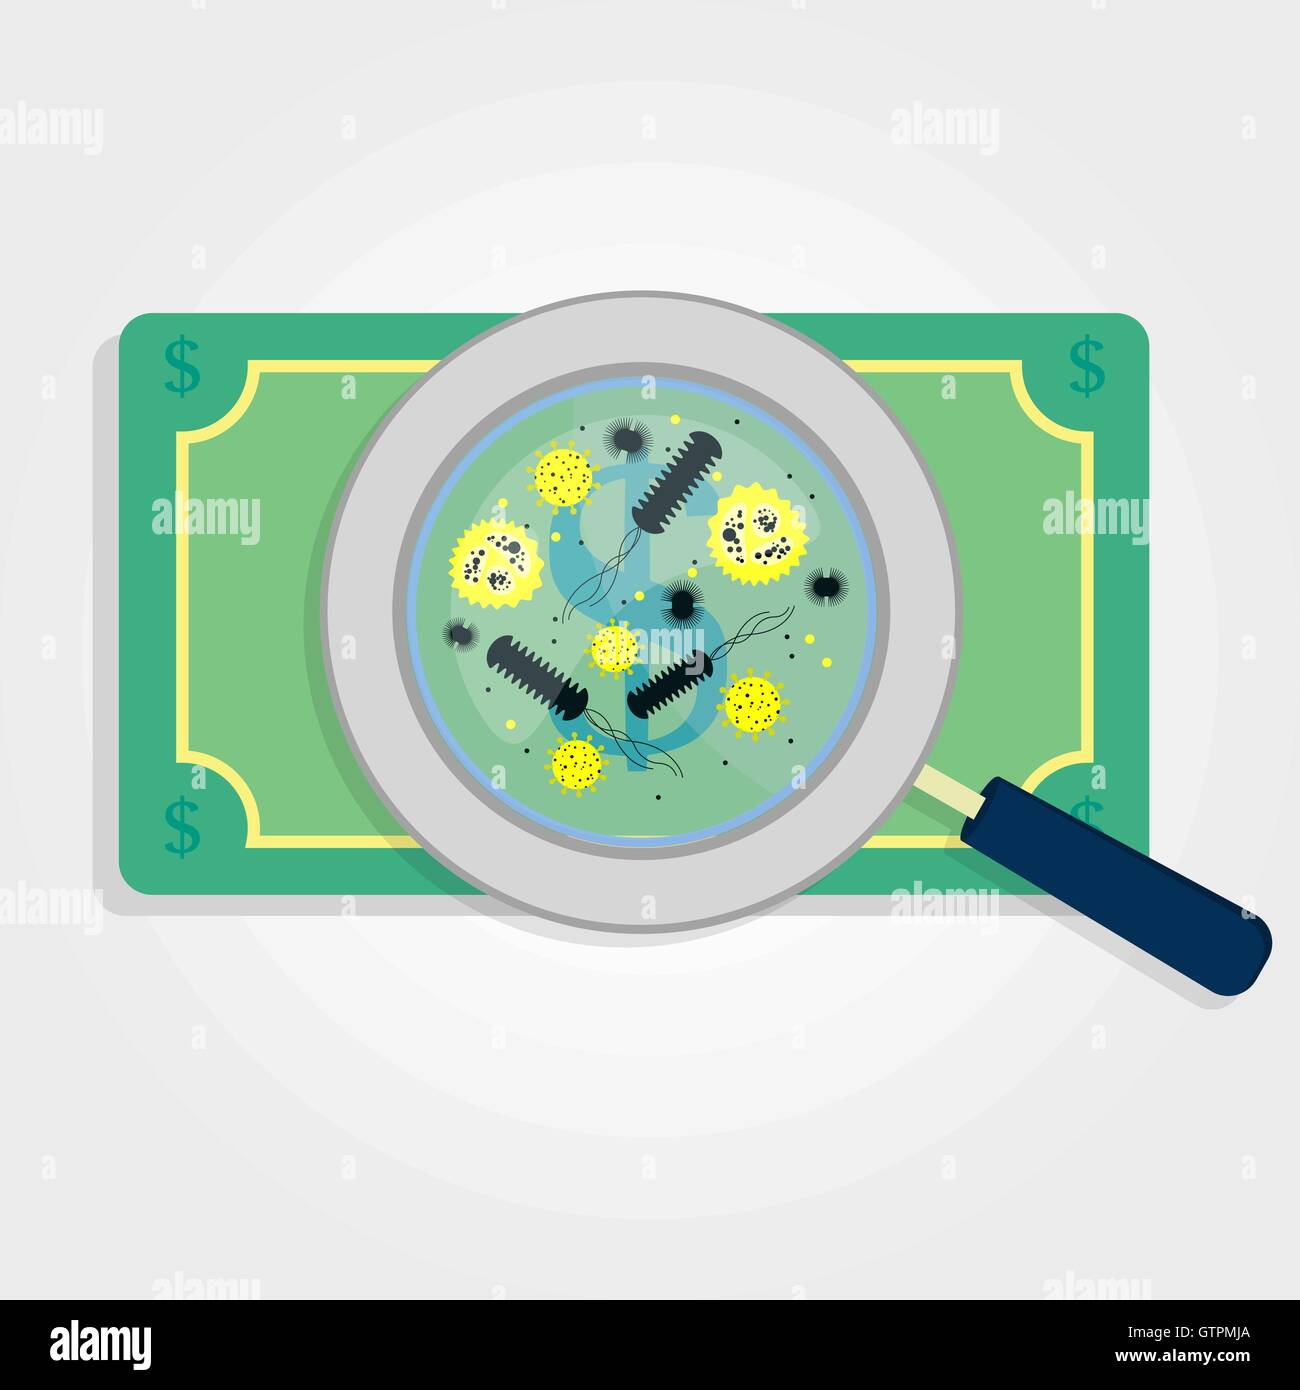 money with virus and bacteria enlarged by a magnifying glass stock vector art illustration